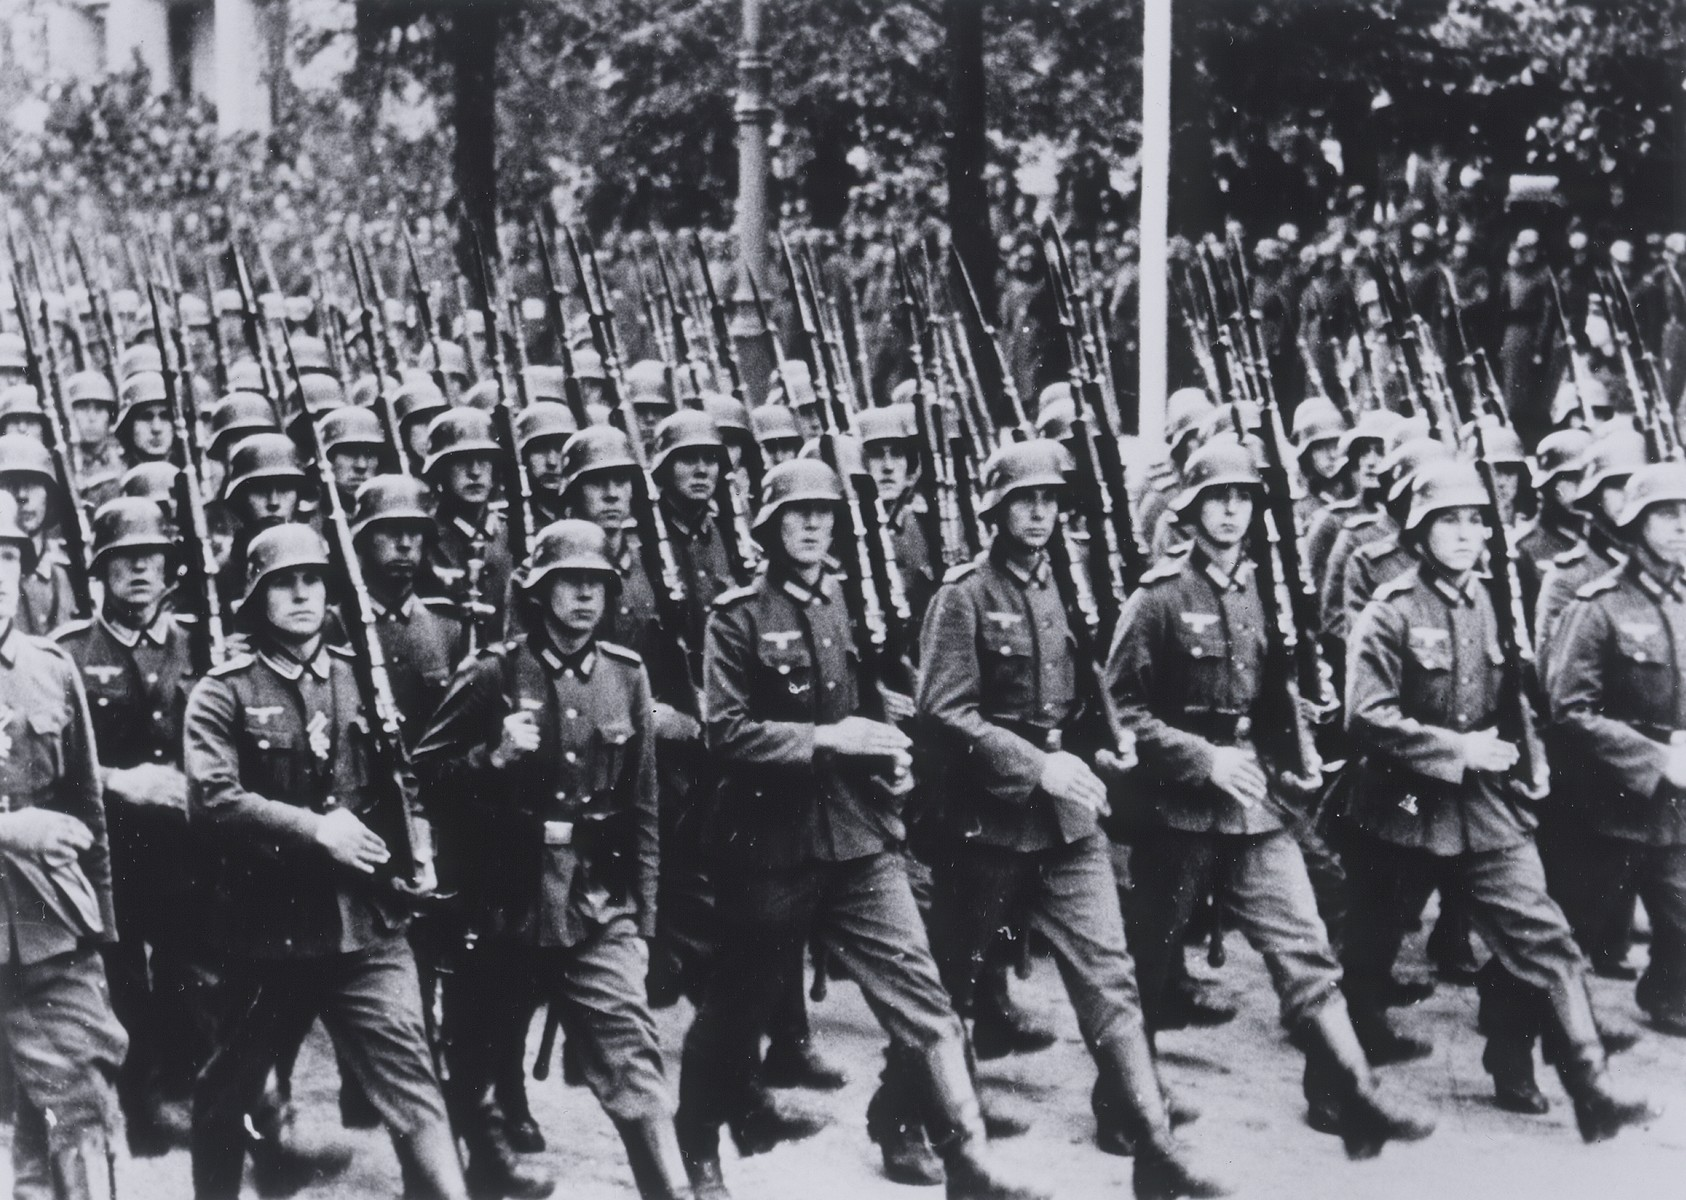 German soldiers march into Warsaw carrying bayonets.